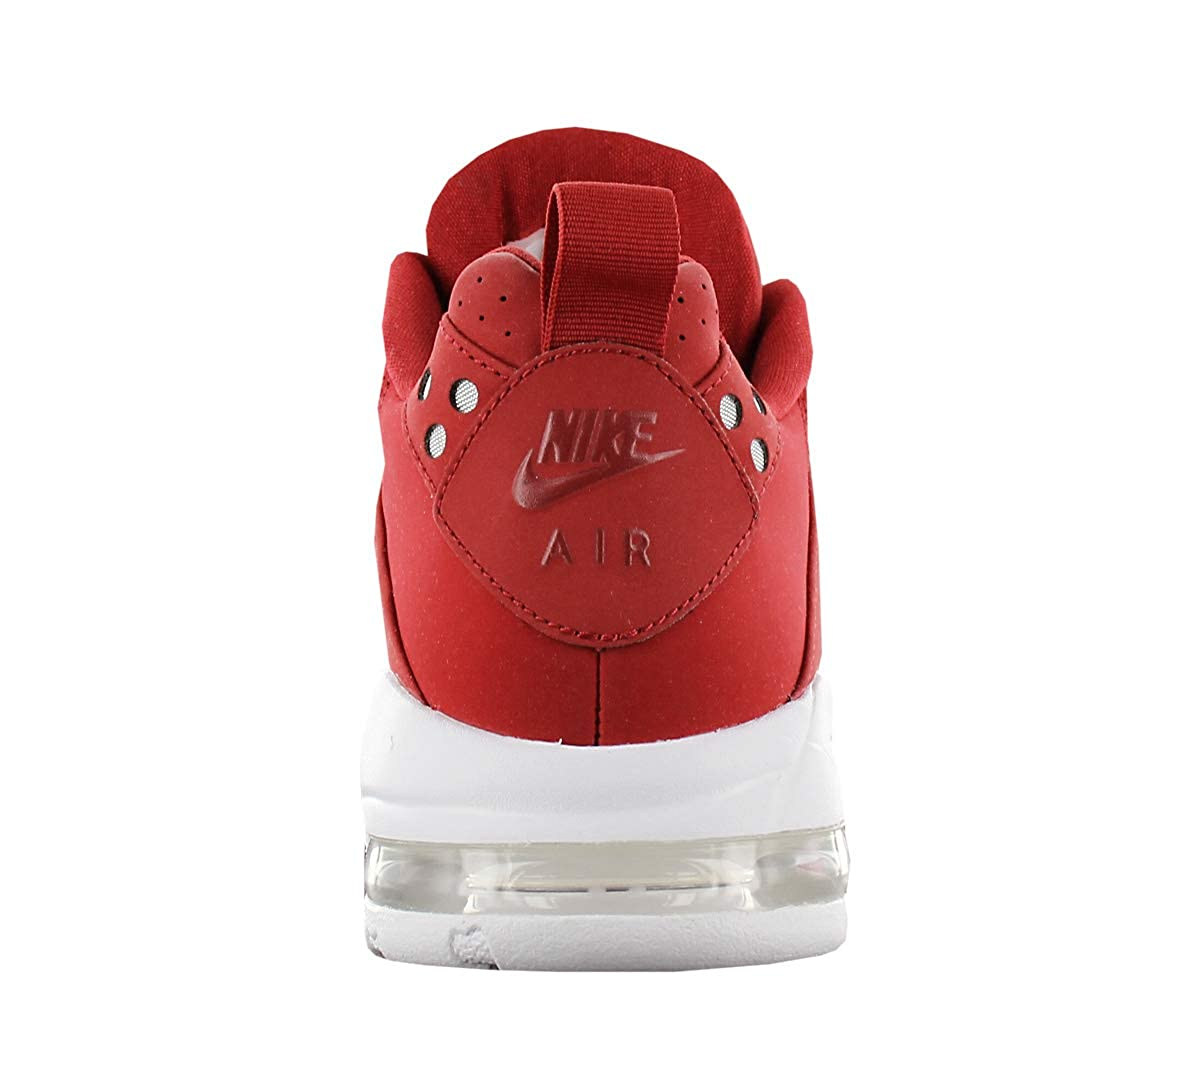 newest b9331 65b4d Nike AIR Max 2 Charles Barkley  94 Low Rouge  Amazon.fr  Chaussures et Sacs